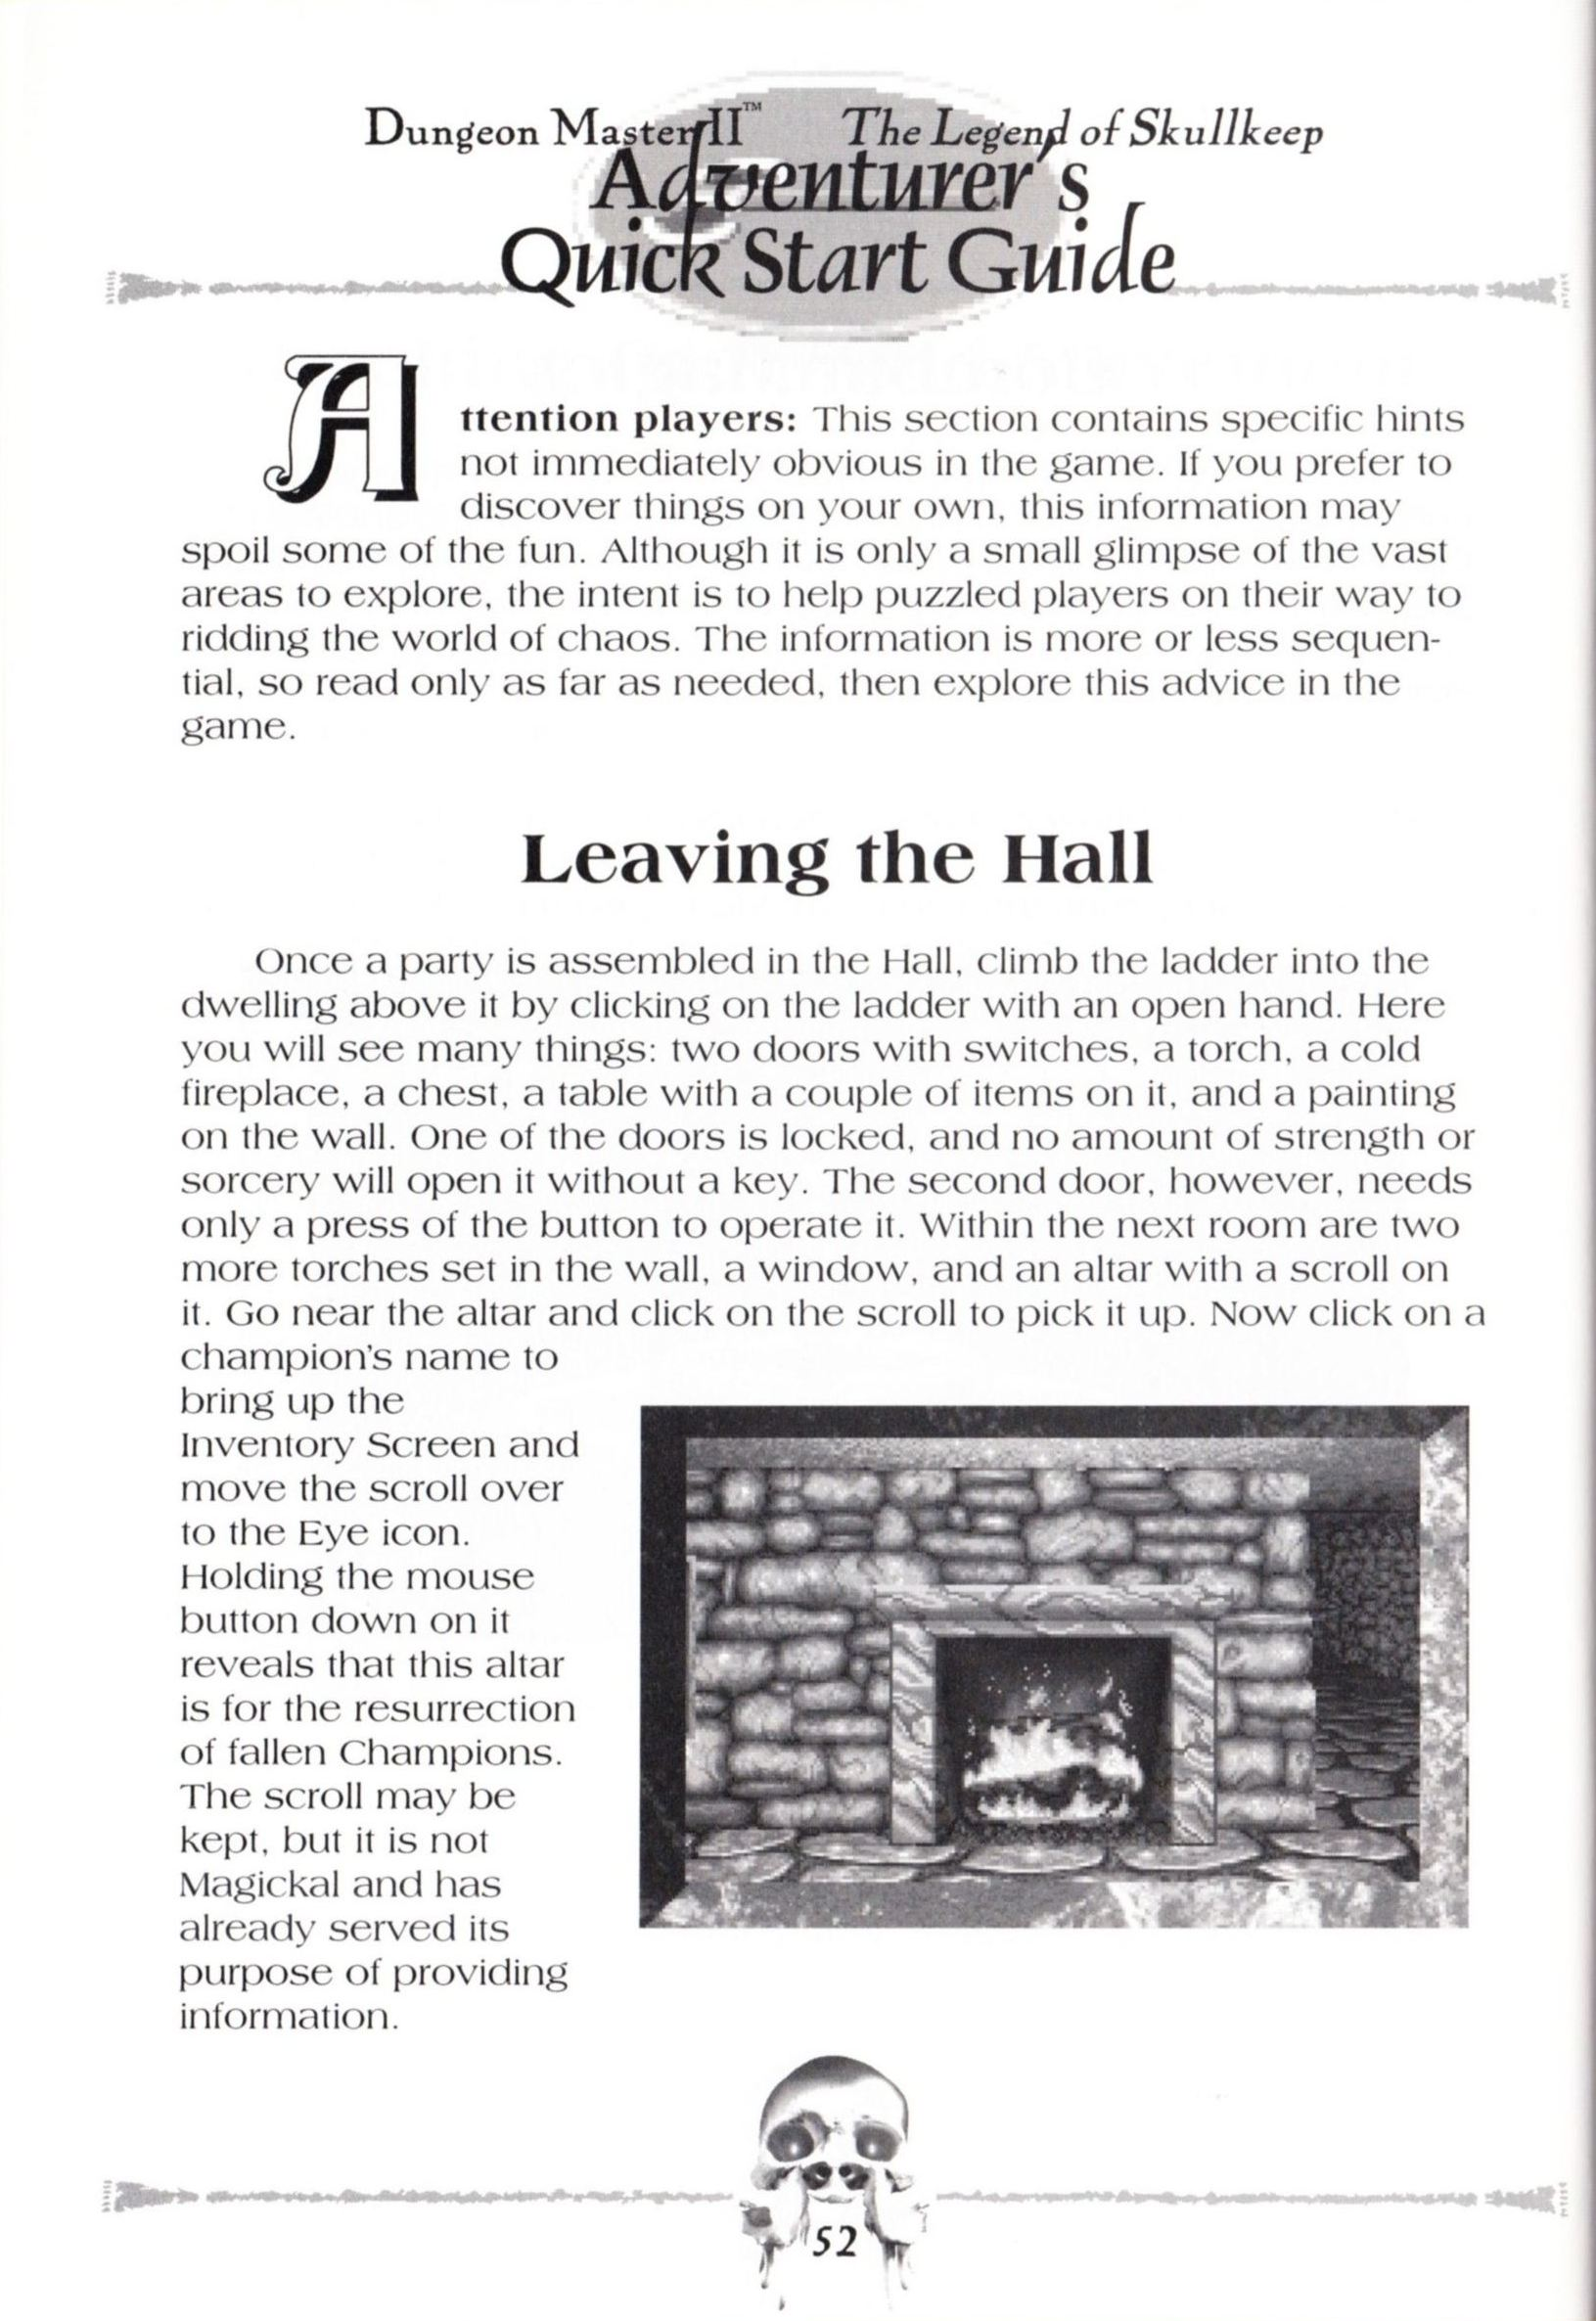 Game - Dungeon Master II - US - Macintosh - Manual - Page 054 - Scan